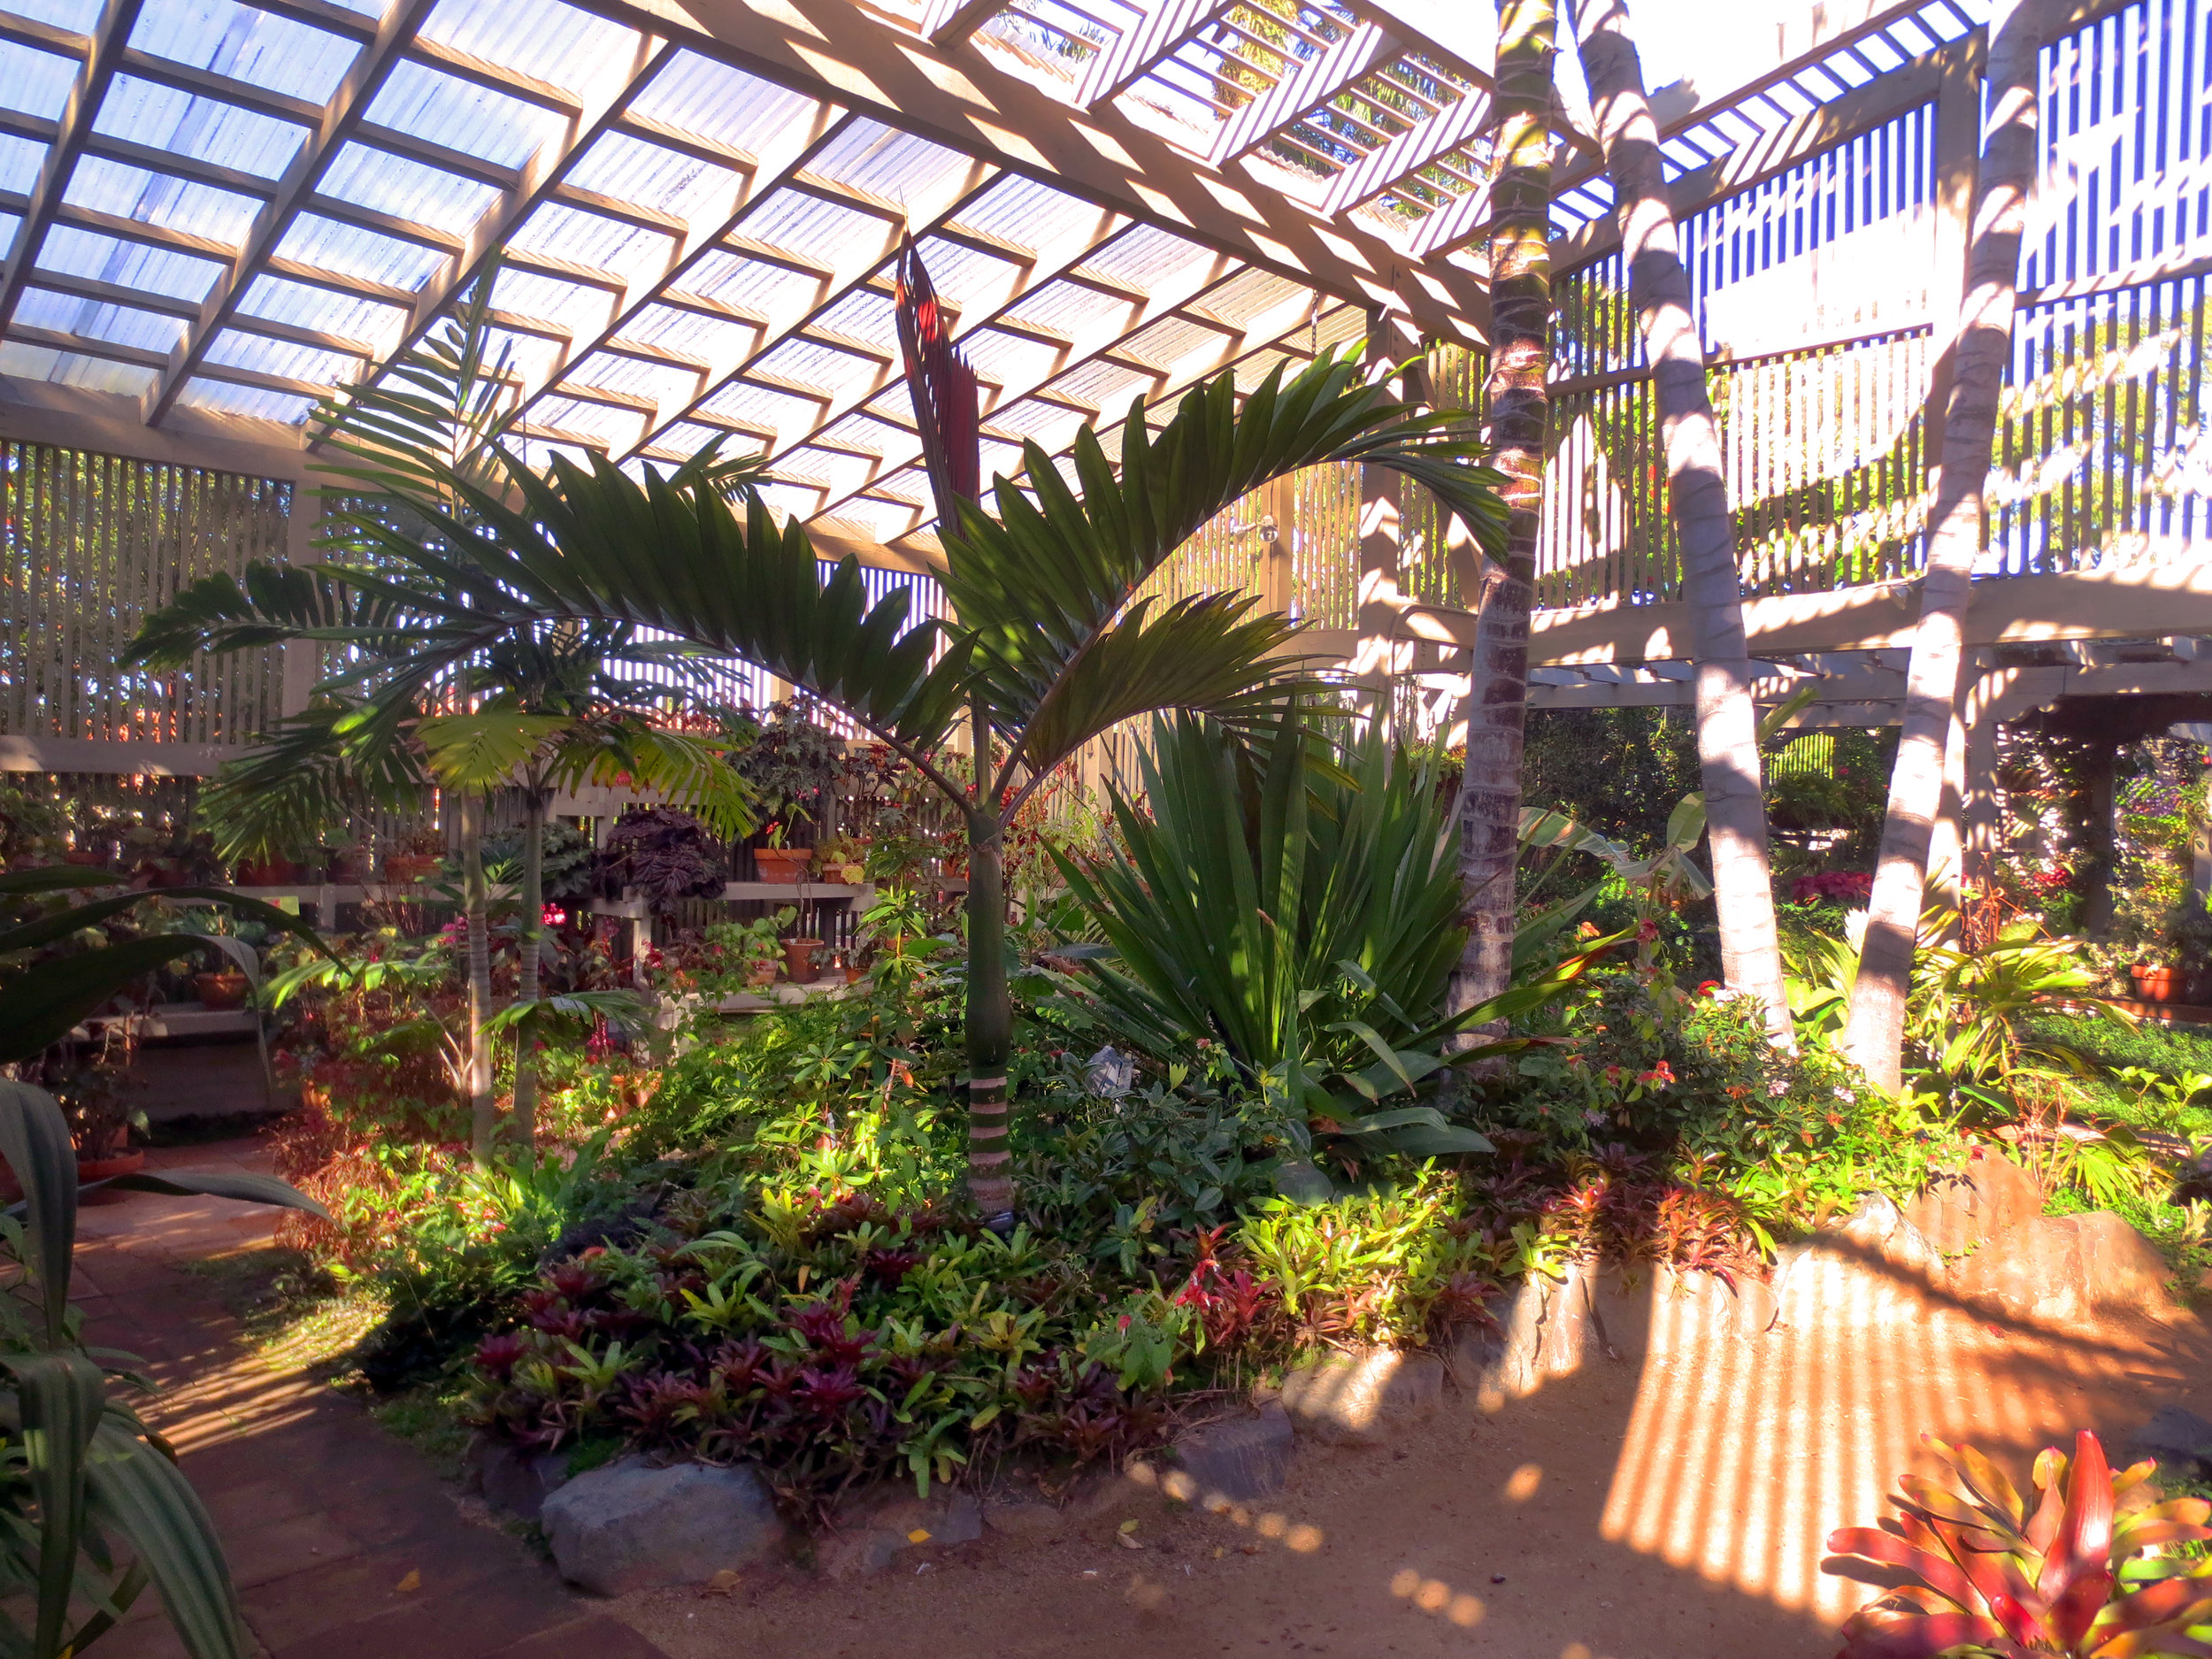 Sherman Library and Garden features a beautiful collection of plants. From beautiful rare palms and tropical foliage to drought tolerant succulents and cacti. Truly a must see for inspirational place!